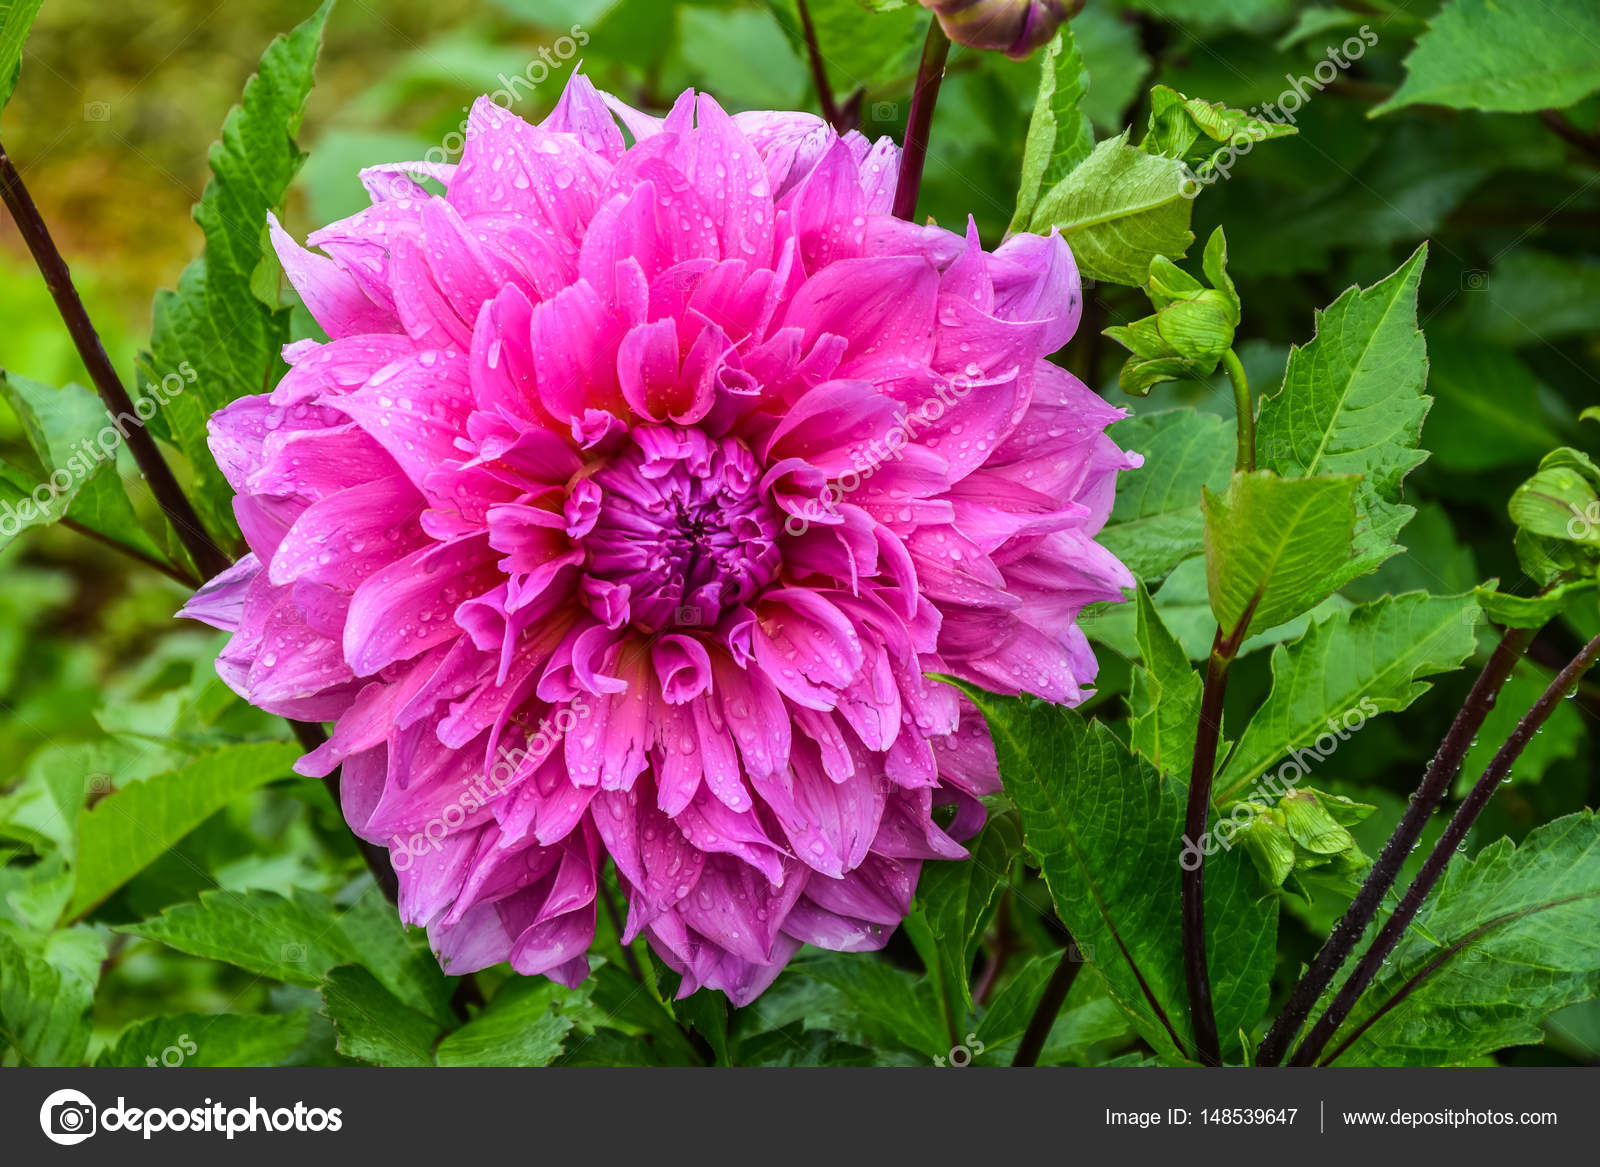 Pink dahlia flower with dew drops stock photo goldquest 148539647 close up pink dahlia flower with dew drops in public park photo by goldquest izmirmasajfo